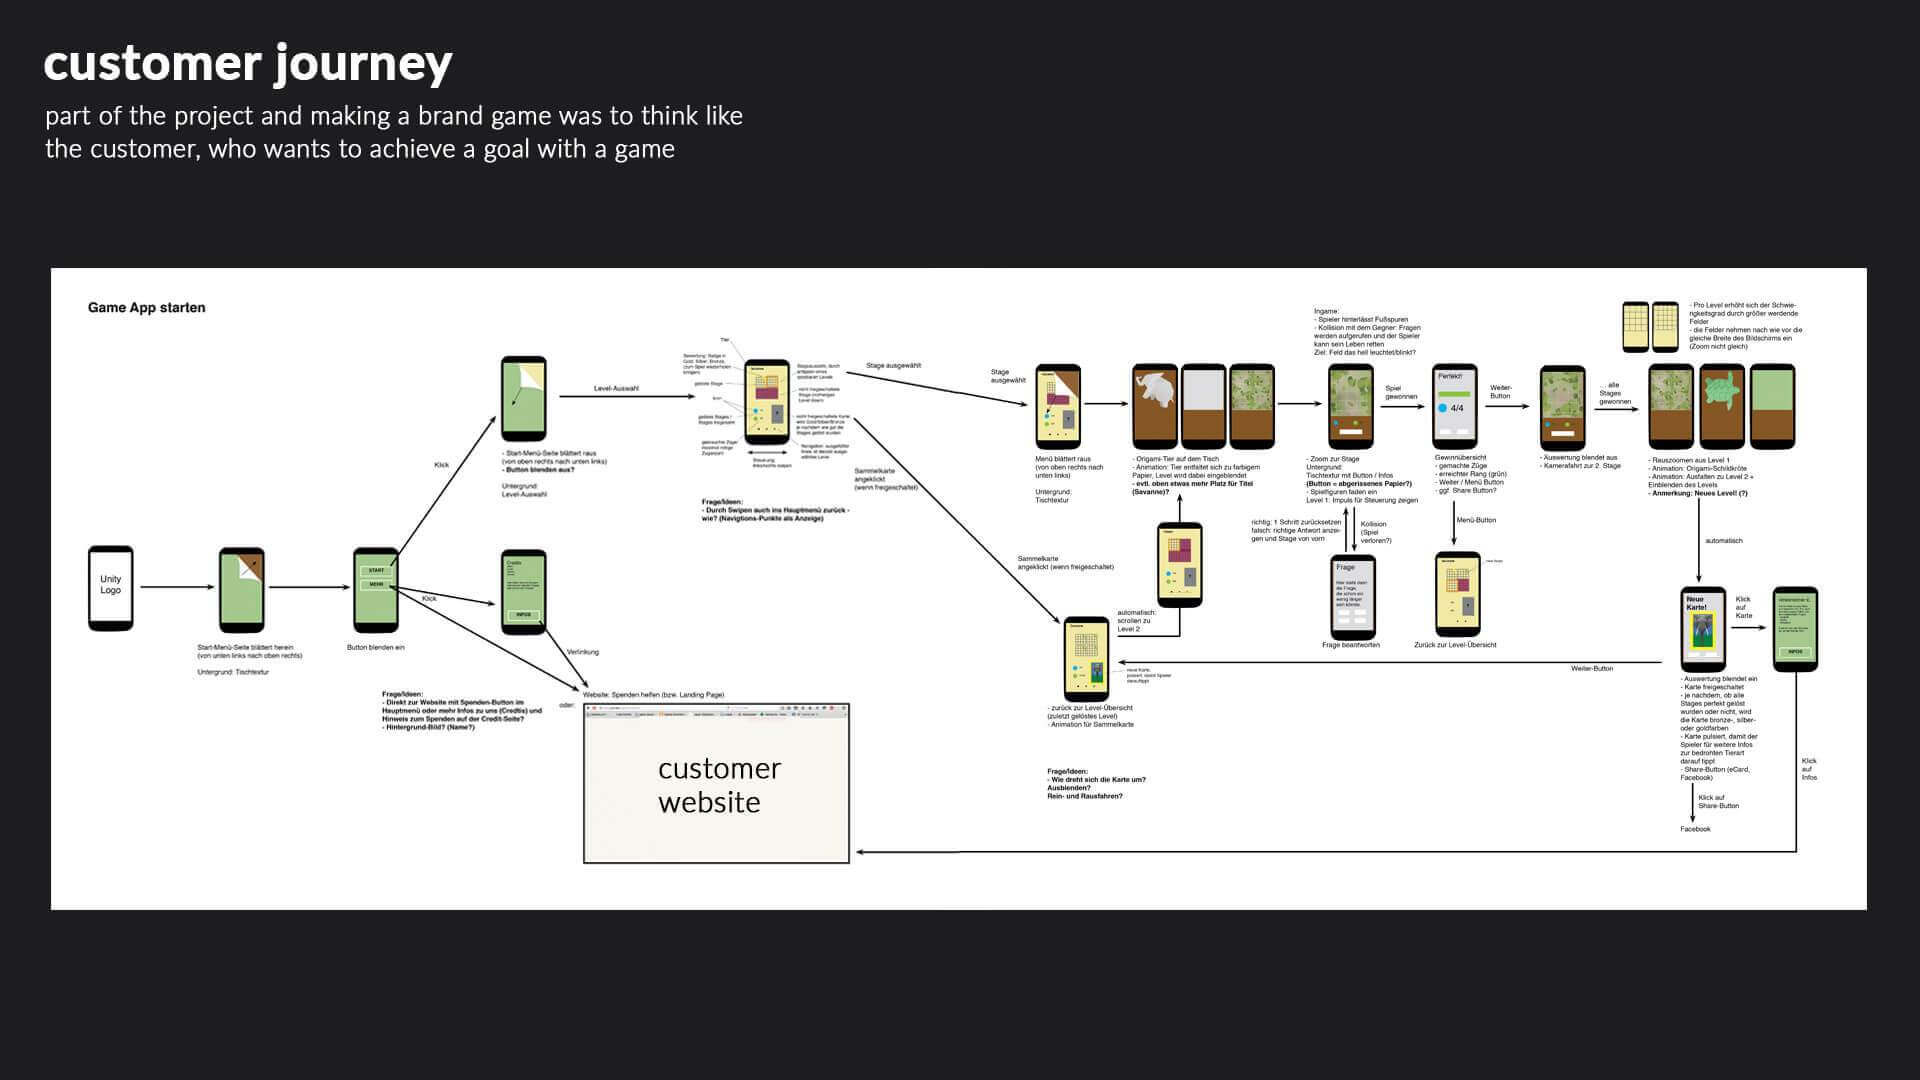 The Customer Journey – from the app to the website